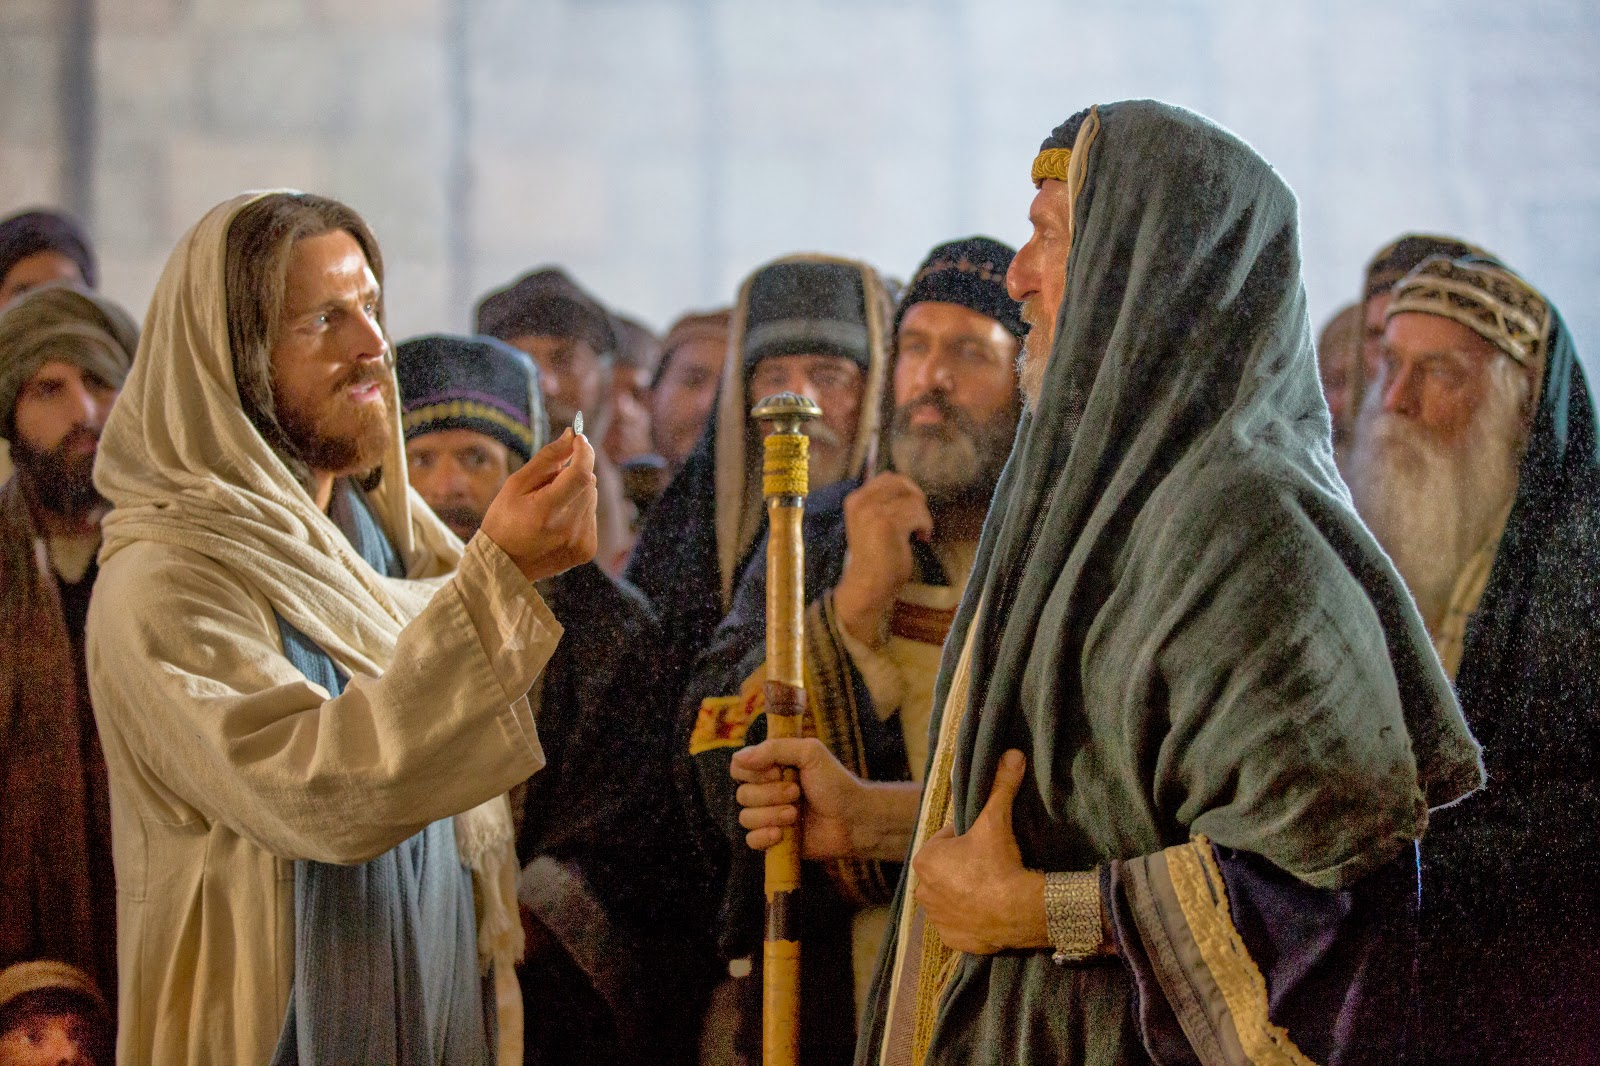 sadducees and jesus relationship with disciples